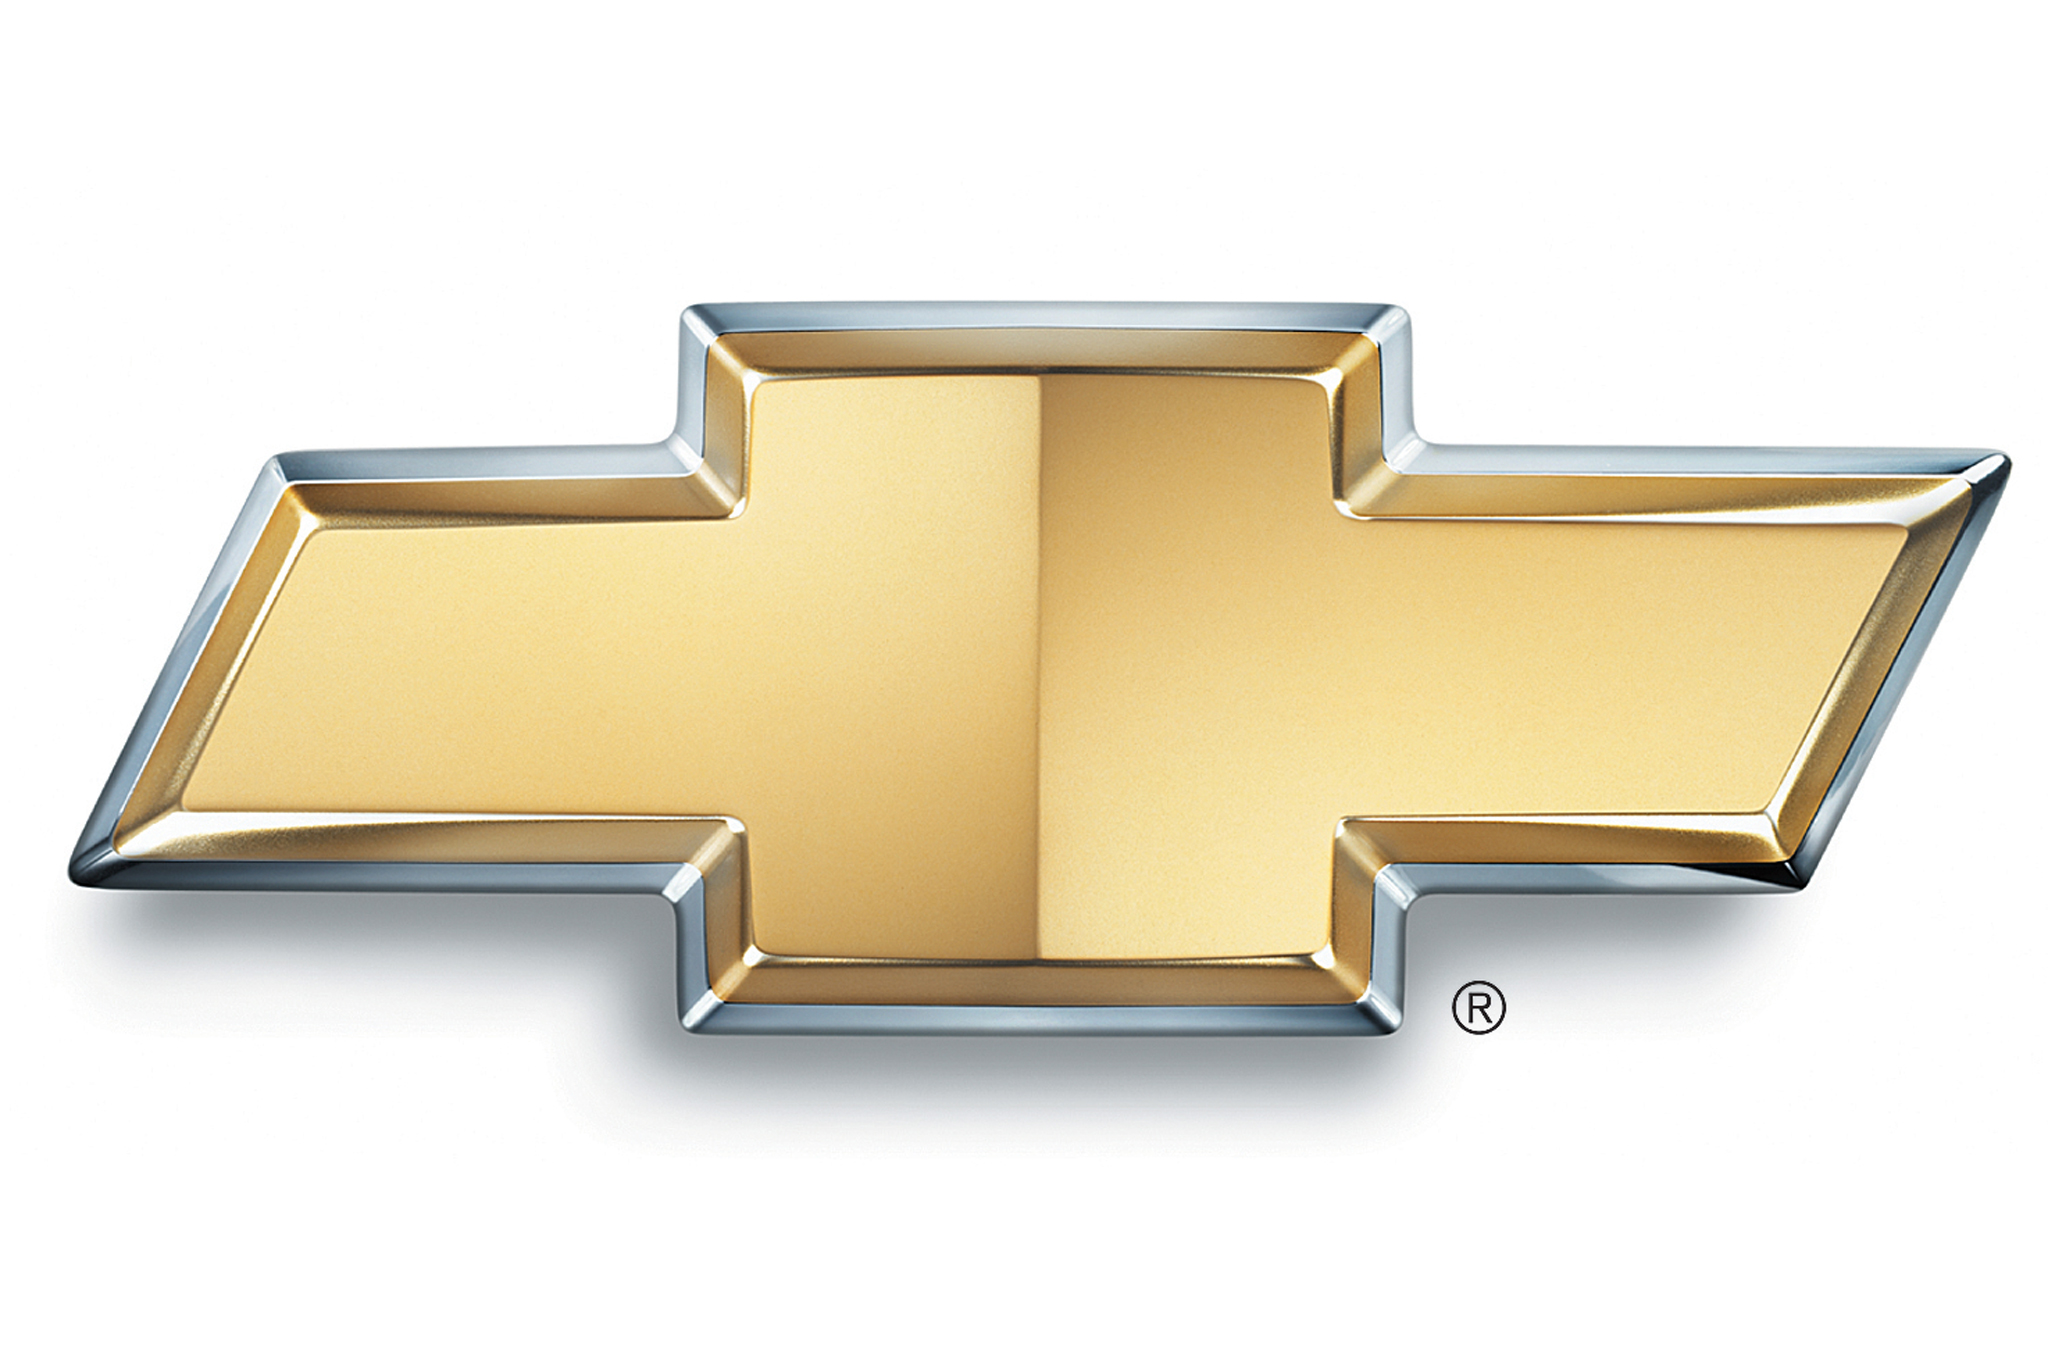 Chevy Bow Tie Clipart.